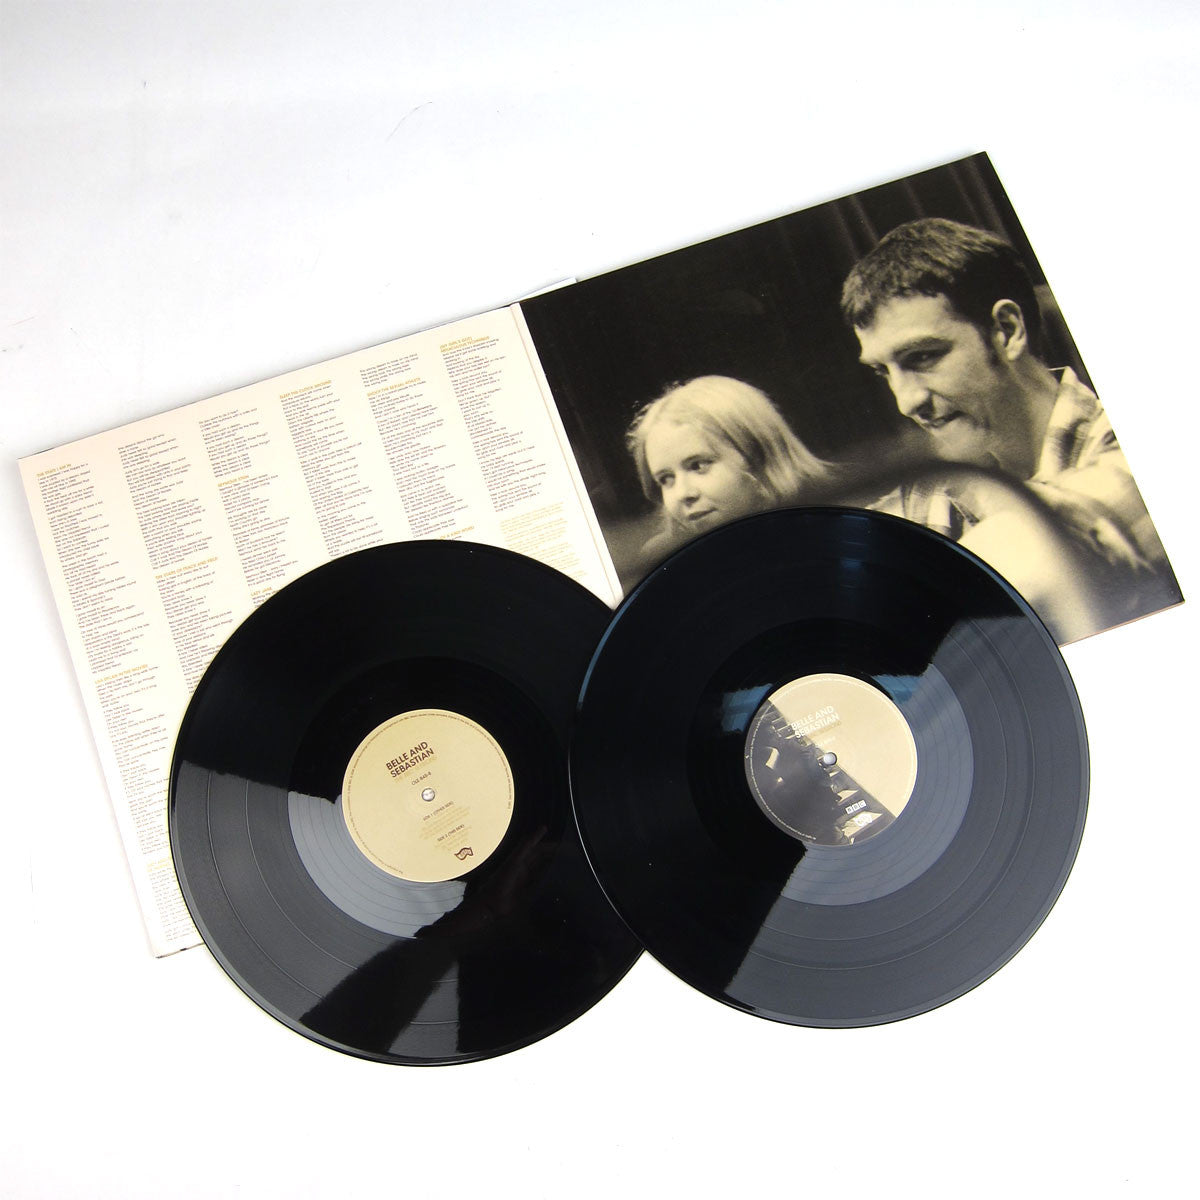 Belle & Sebastian: The BBC Sessions (Free MP3) Vinyl 2LP detail